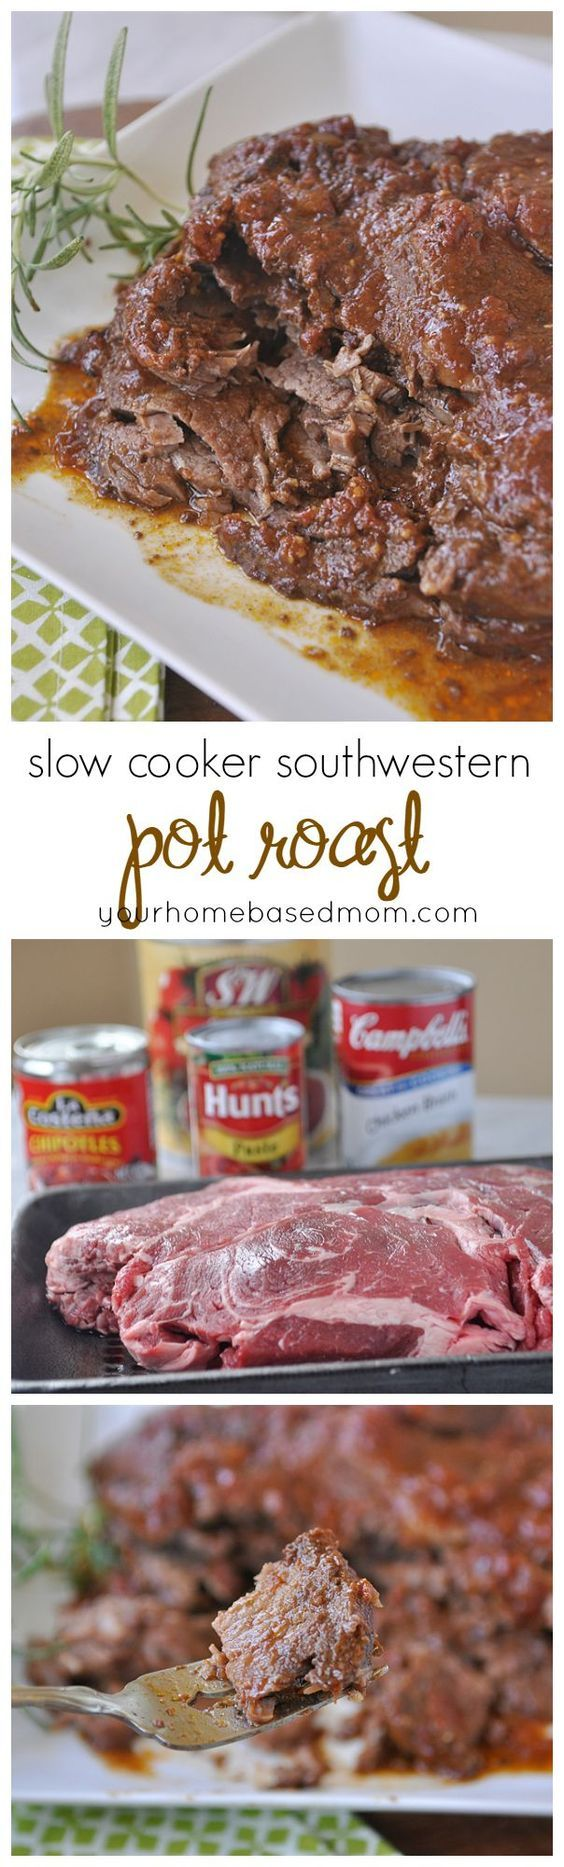 Slow Cooker Southwestern Pot Roast Recipe - This is the best pot roast!  This Crock Pot Southwestern Pot Roast is tender and delicious!  Just possibly the best pot roast I've ever made.